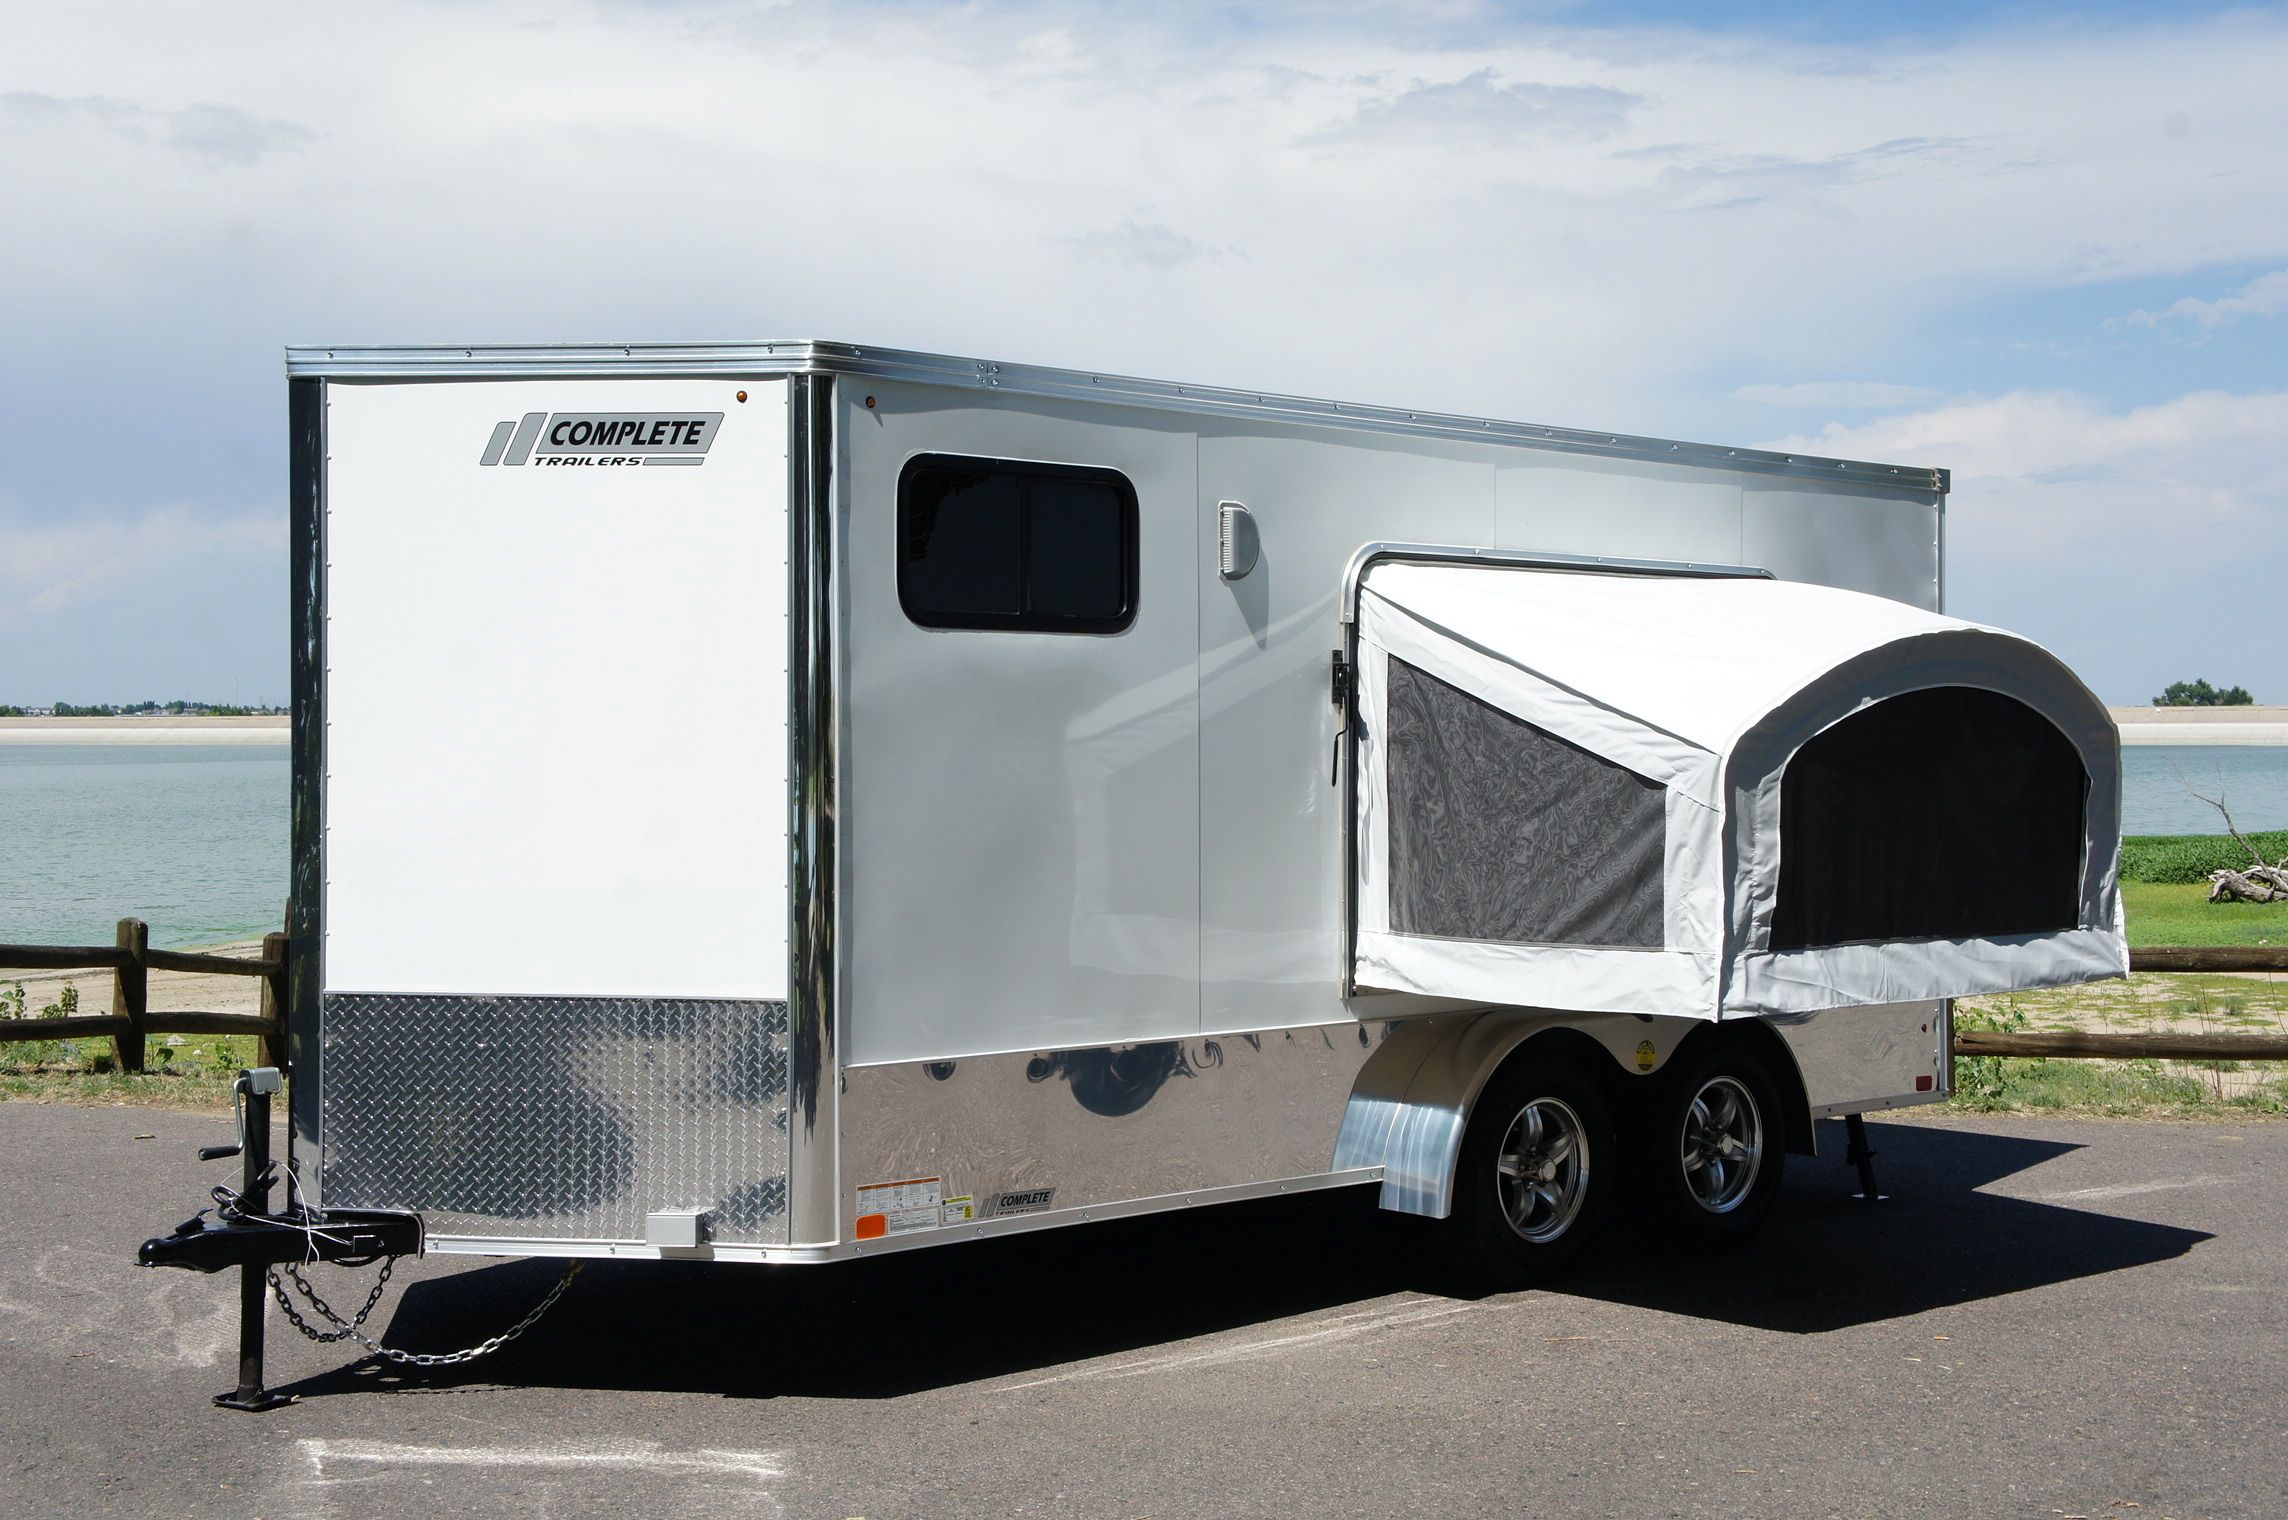 pop up motorcycle camper with 573646071270559654 on Watch moreover Bike C ers 12 Mini Mobile Homes For Nomadic Cyclists furthermore 193443746467610873 besides 56033 Sun Lite Pop Up C er additionally Watch.